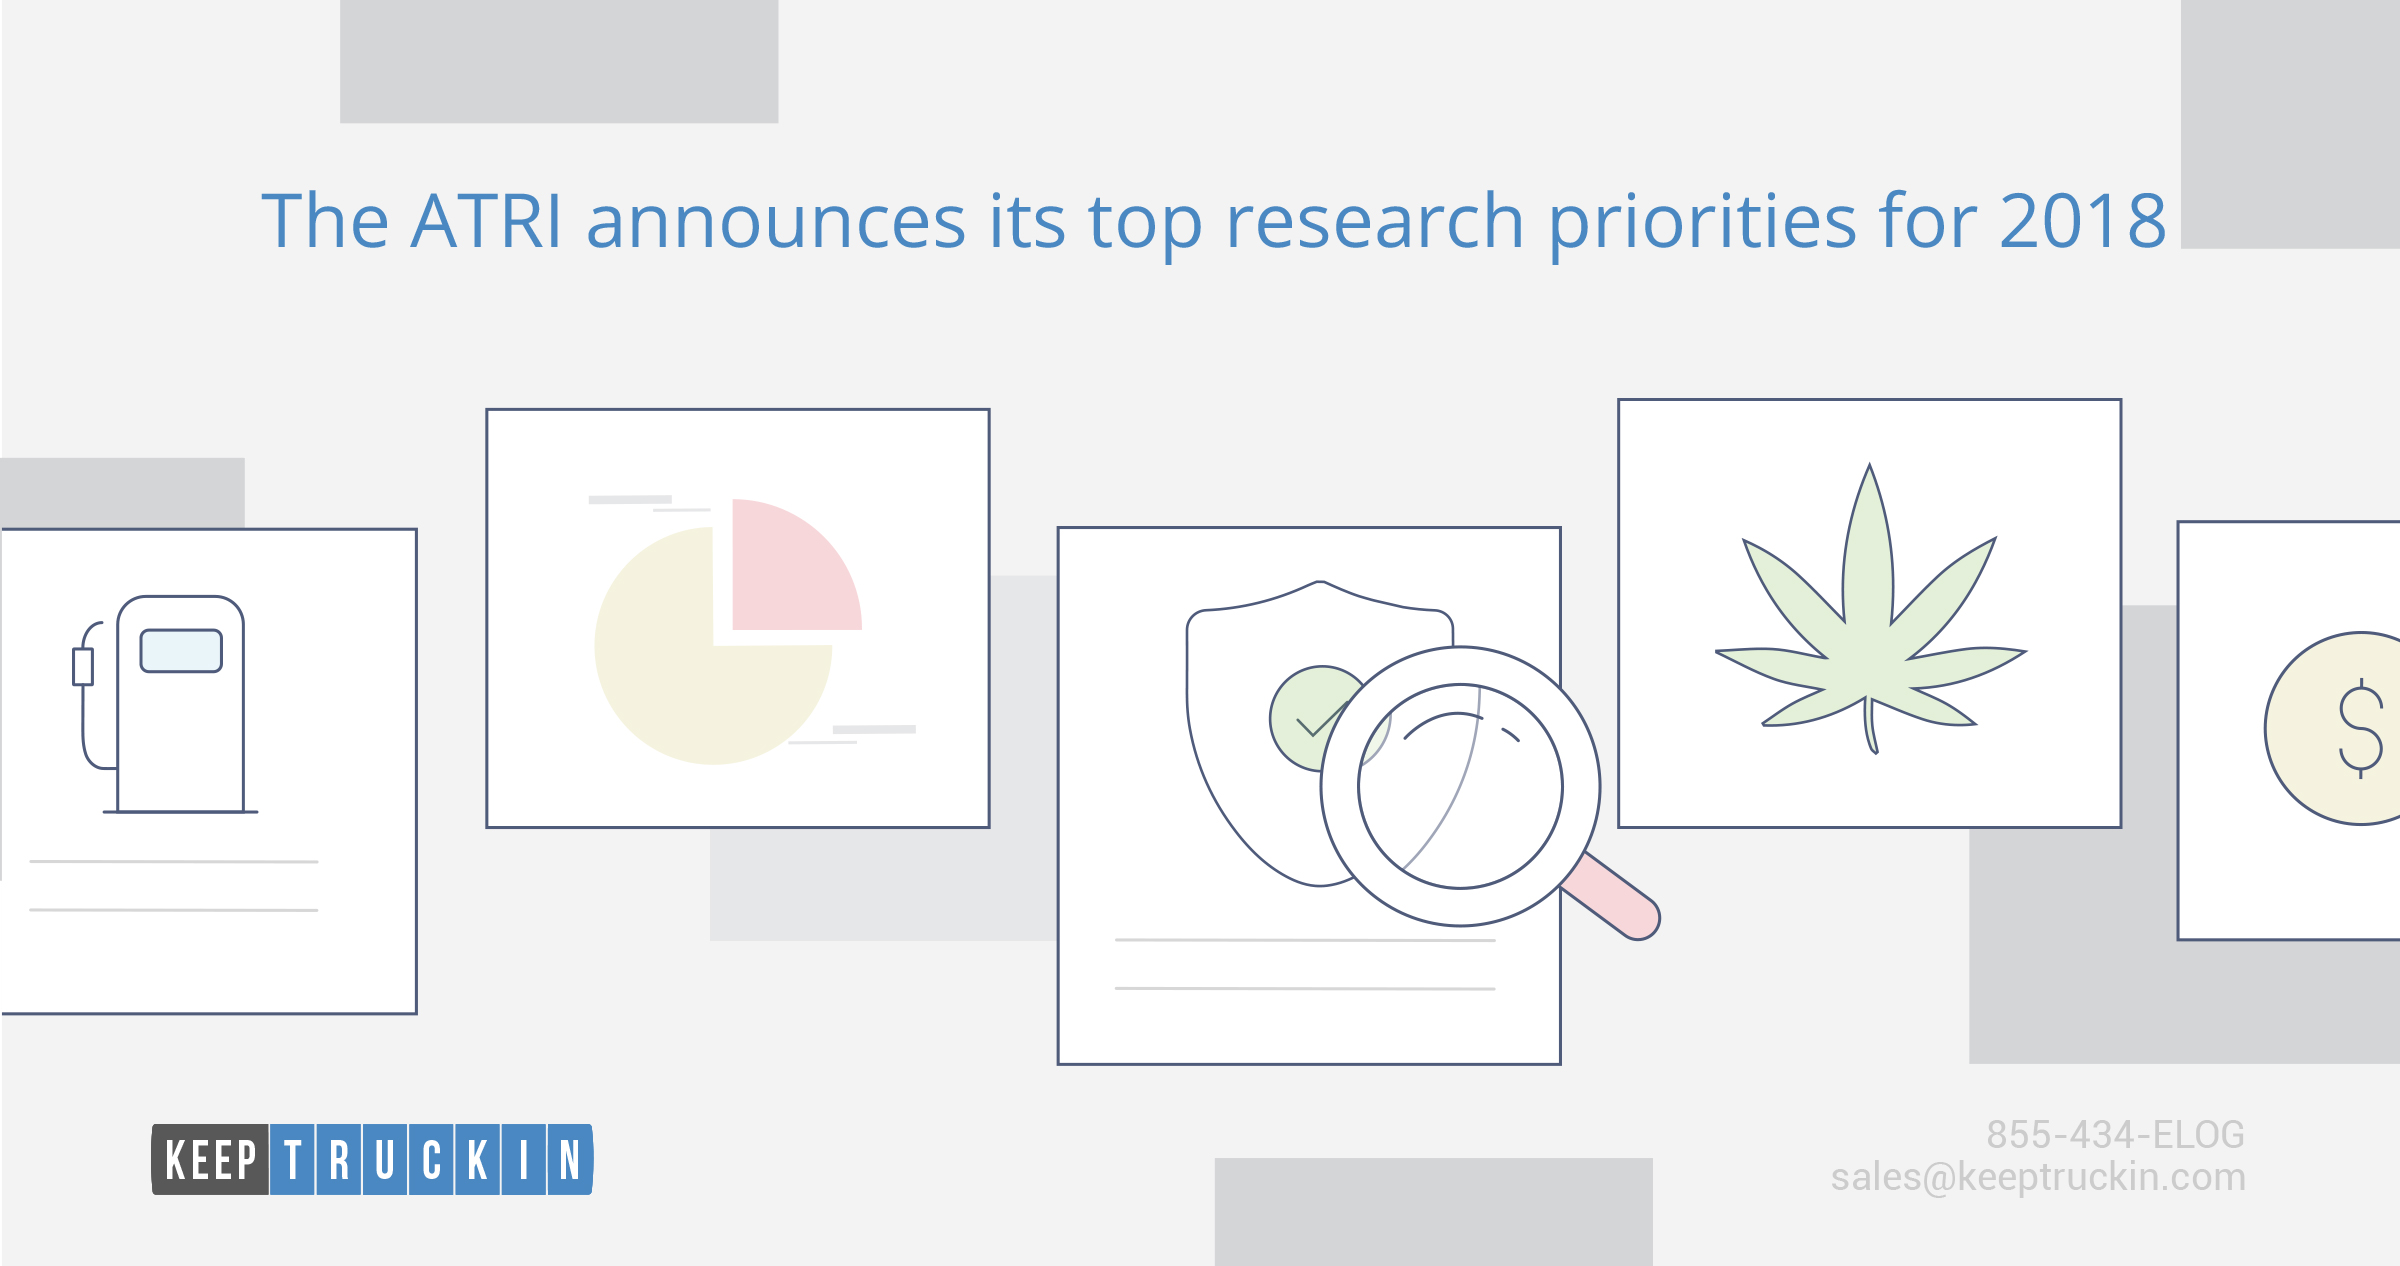 The ATRI announces its top research priorities for 2018